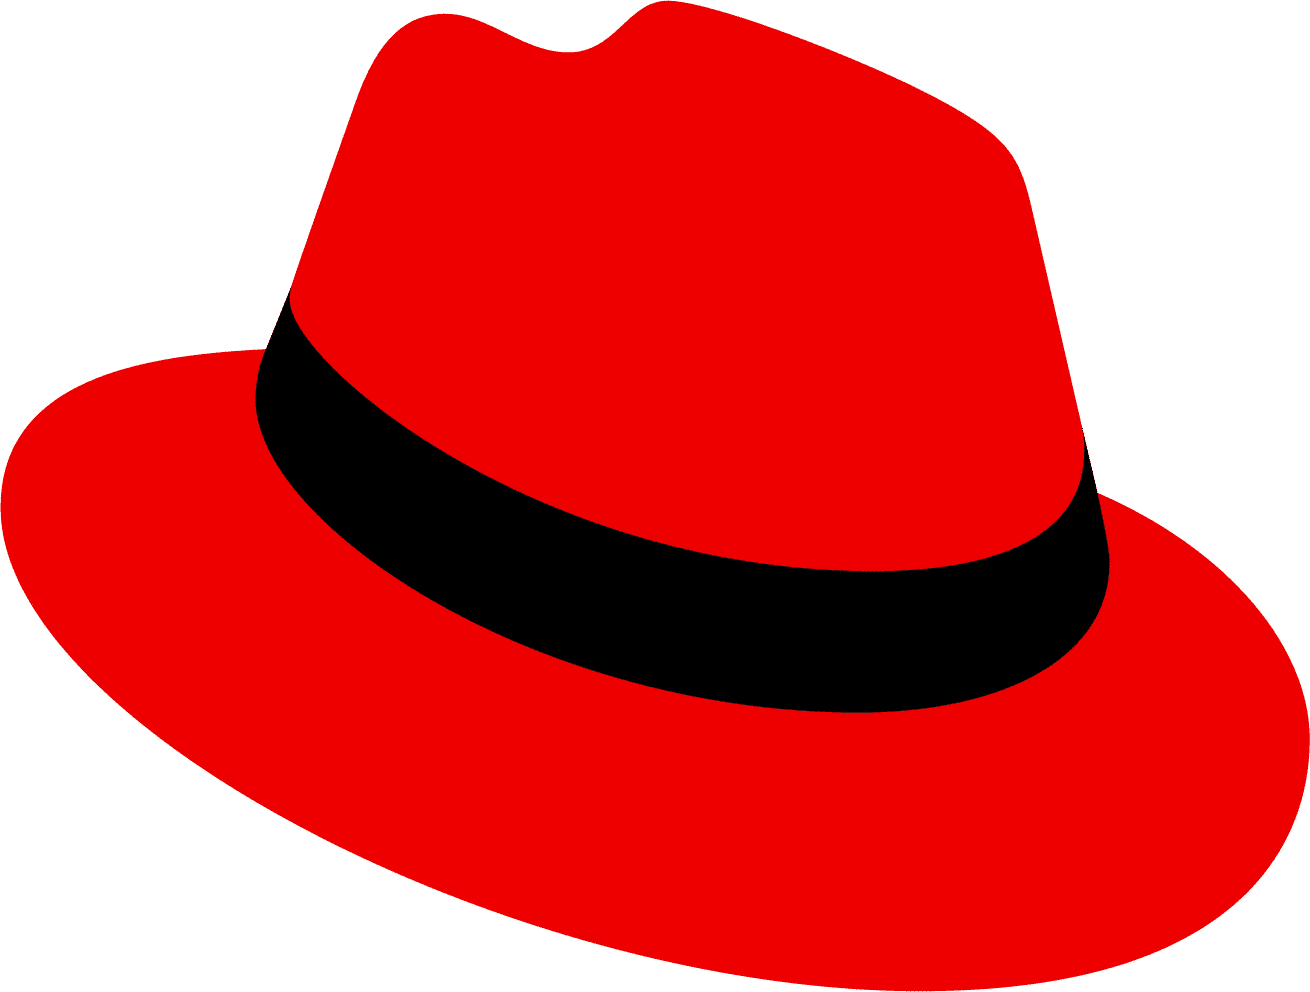 Red_Hat_2020_logo